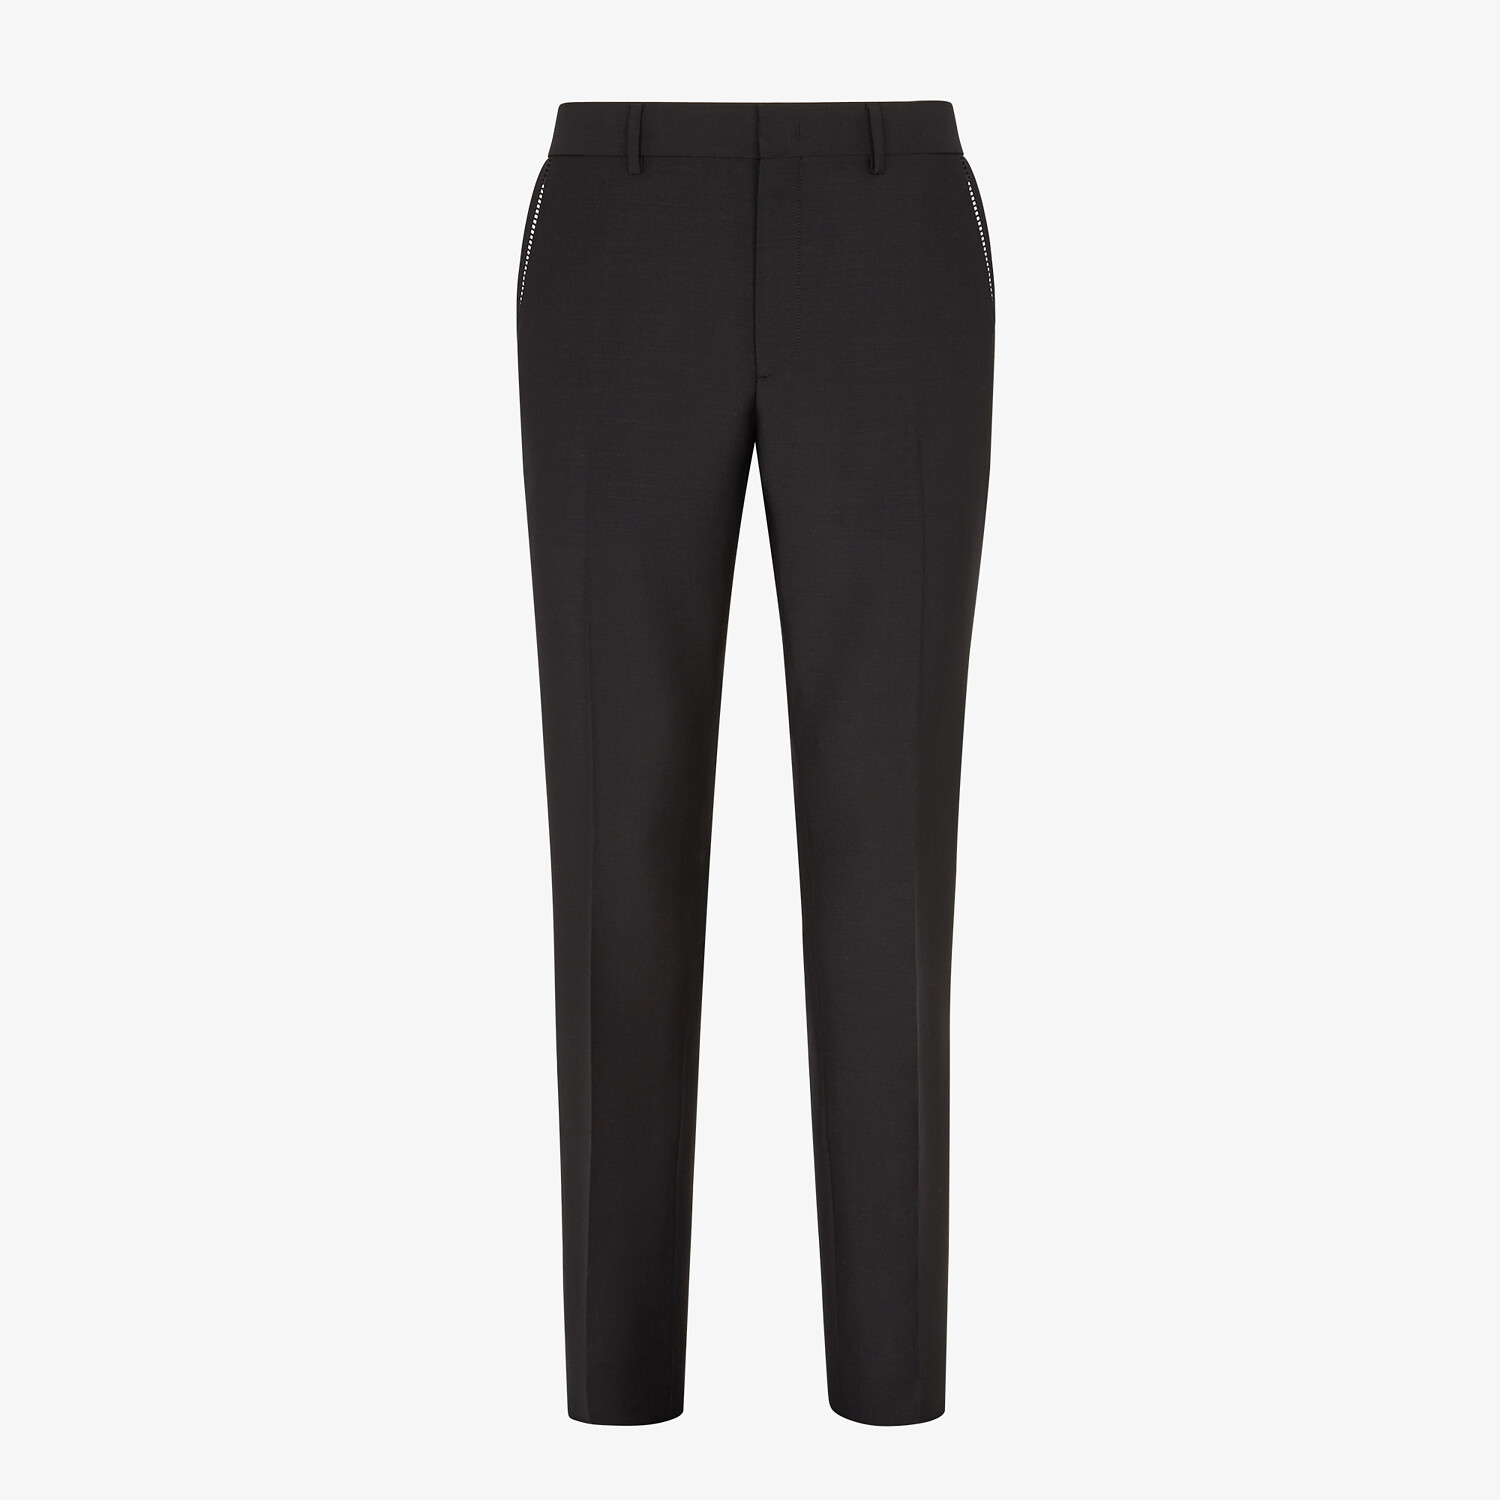 FENDI TROUSERS - Black wool trousers - view 1 detail